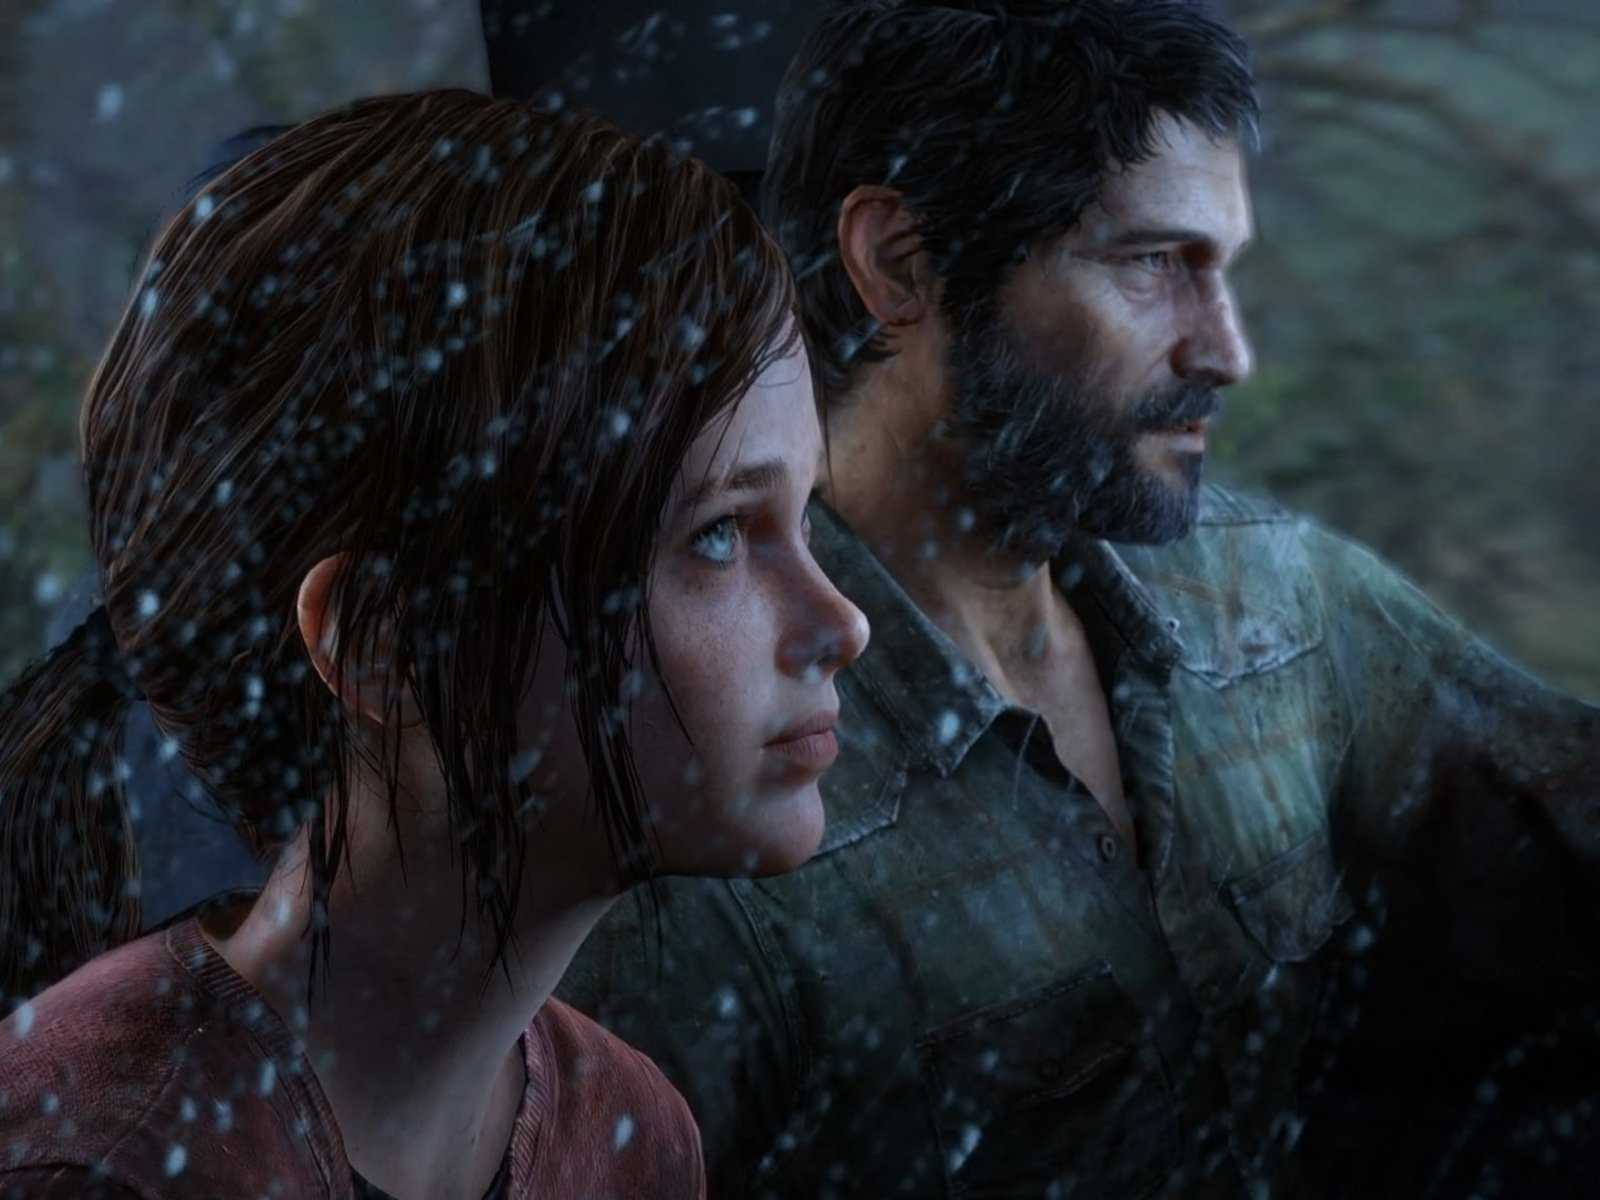 Fondo de pantalla de The Last of Us 1600x1200